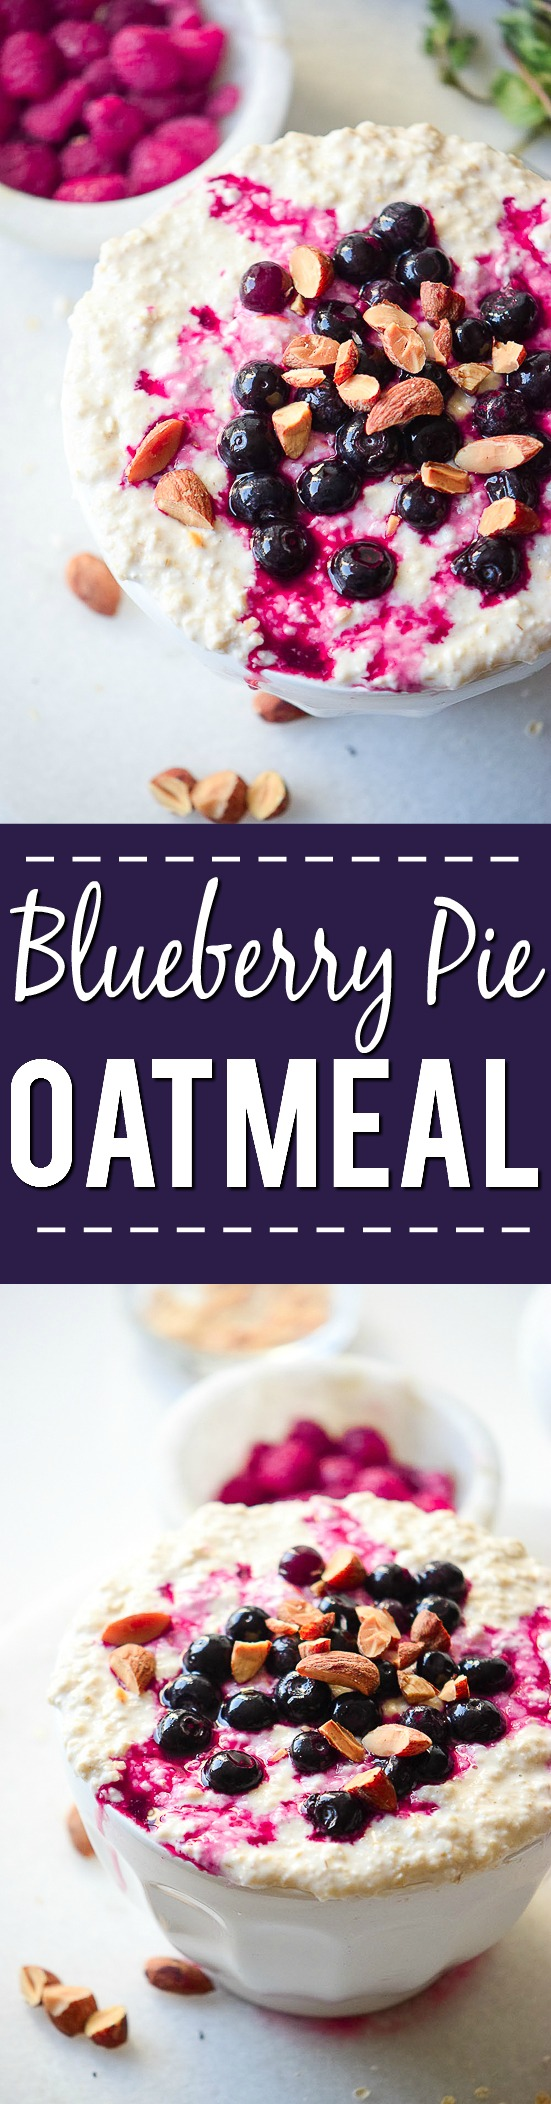 Blueberry Pie Oatmeal Recipe - For a quick and easy breakfast, try this Blueberry Pie Oatmeal recipe that's packed with fresh (or frozen!) blueberries, with a little bit of cinnamon and brown sugar for a healthy breakfast in 10 minutes!